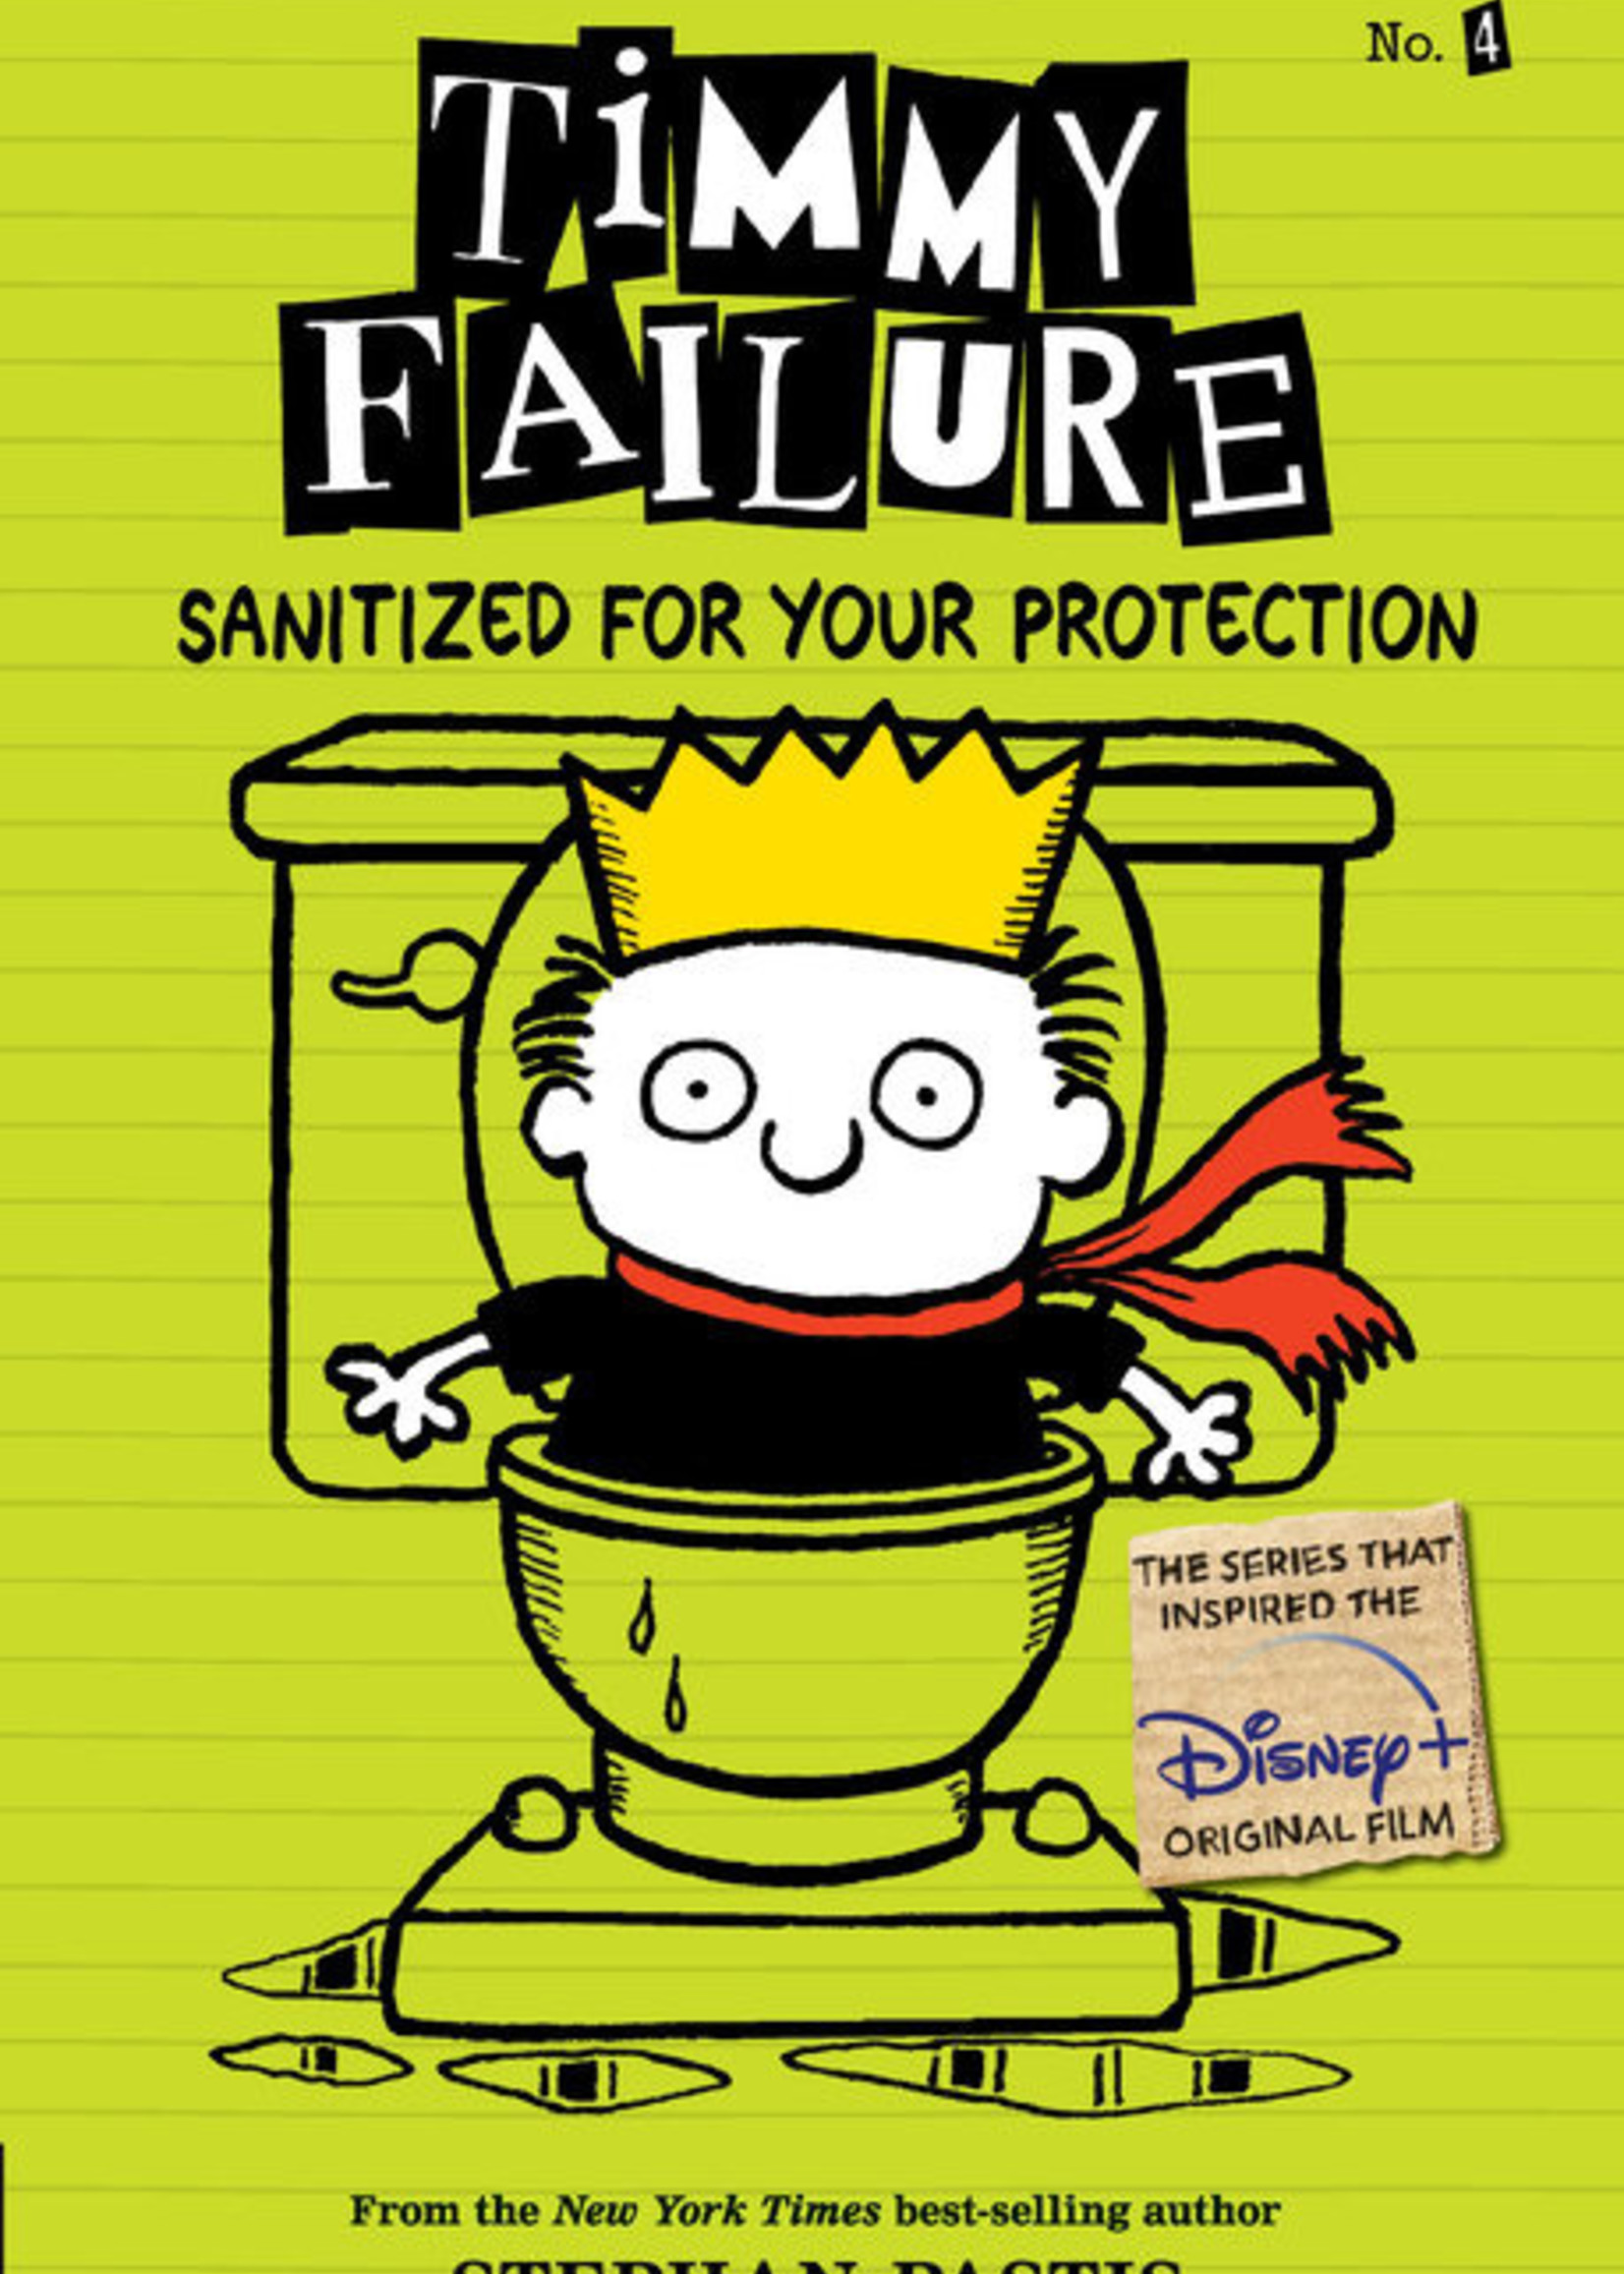 Timmy Failure #04, Sanitized for Your Protection Illustrated Novel - Paperback